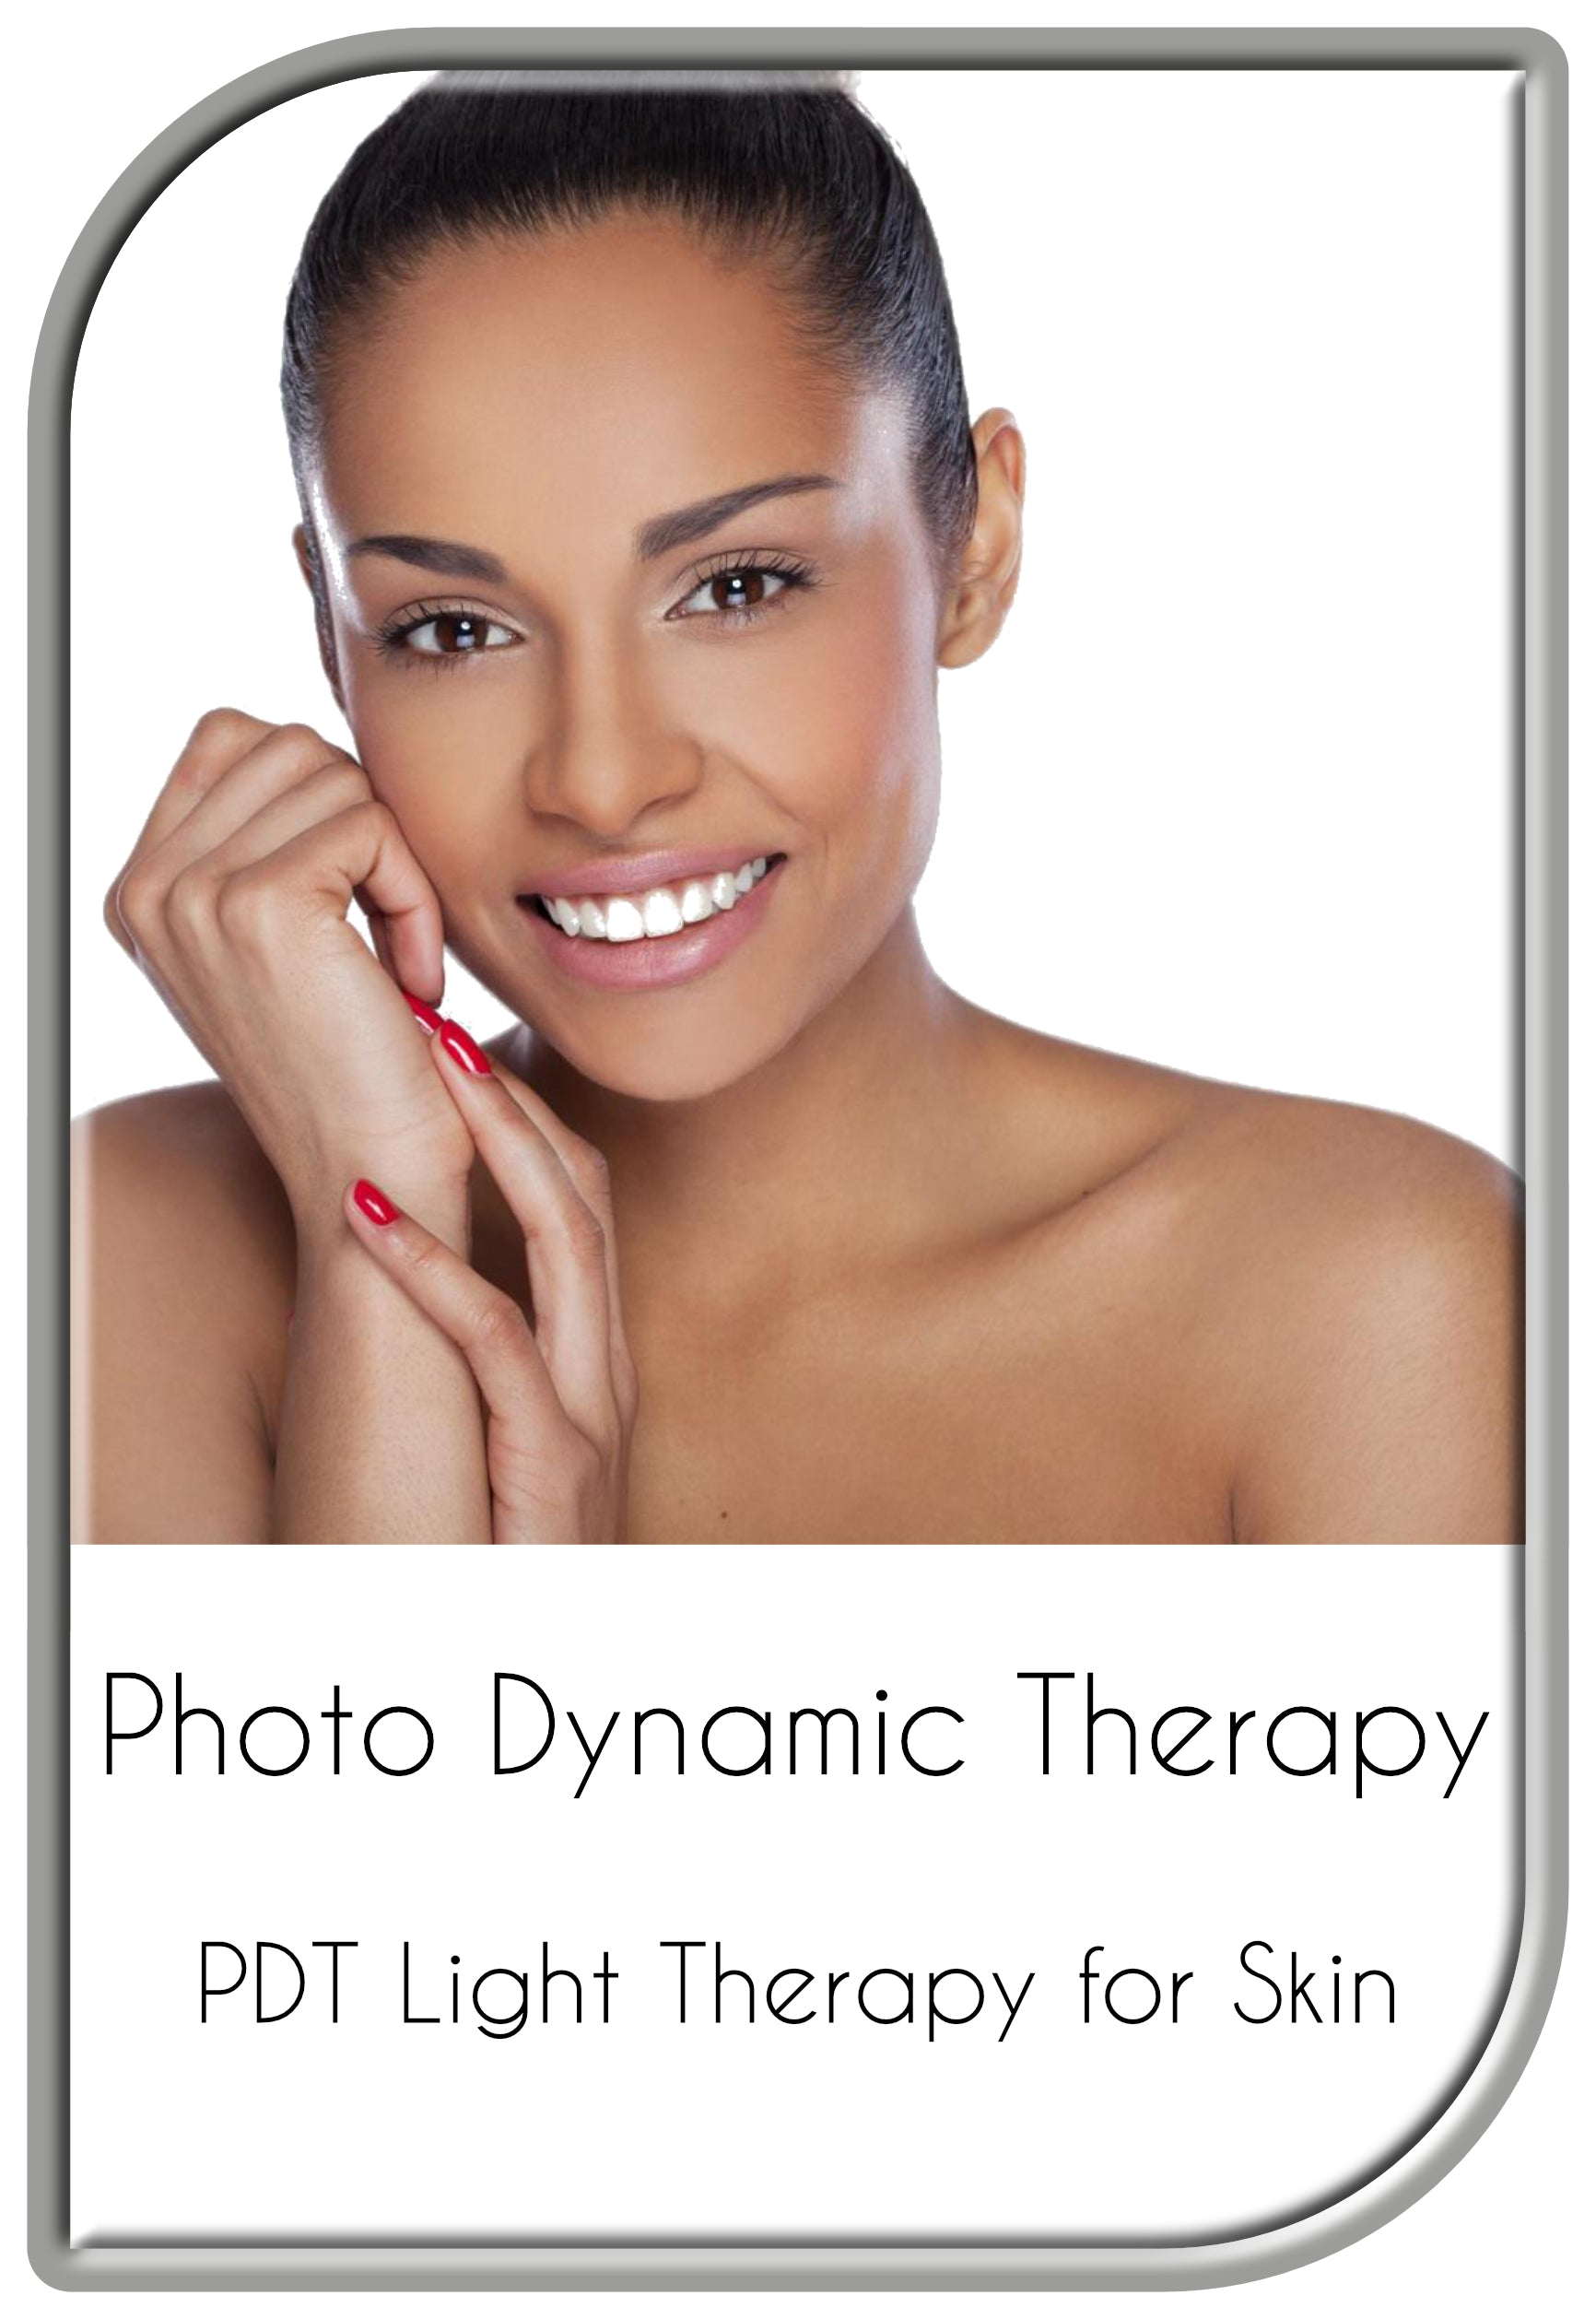 Photo Dynamic Therapy (PDT Light Therapy)